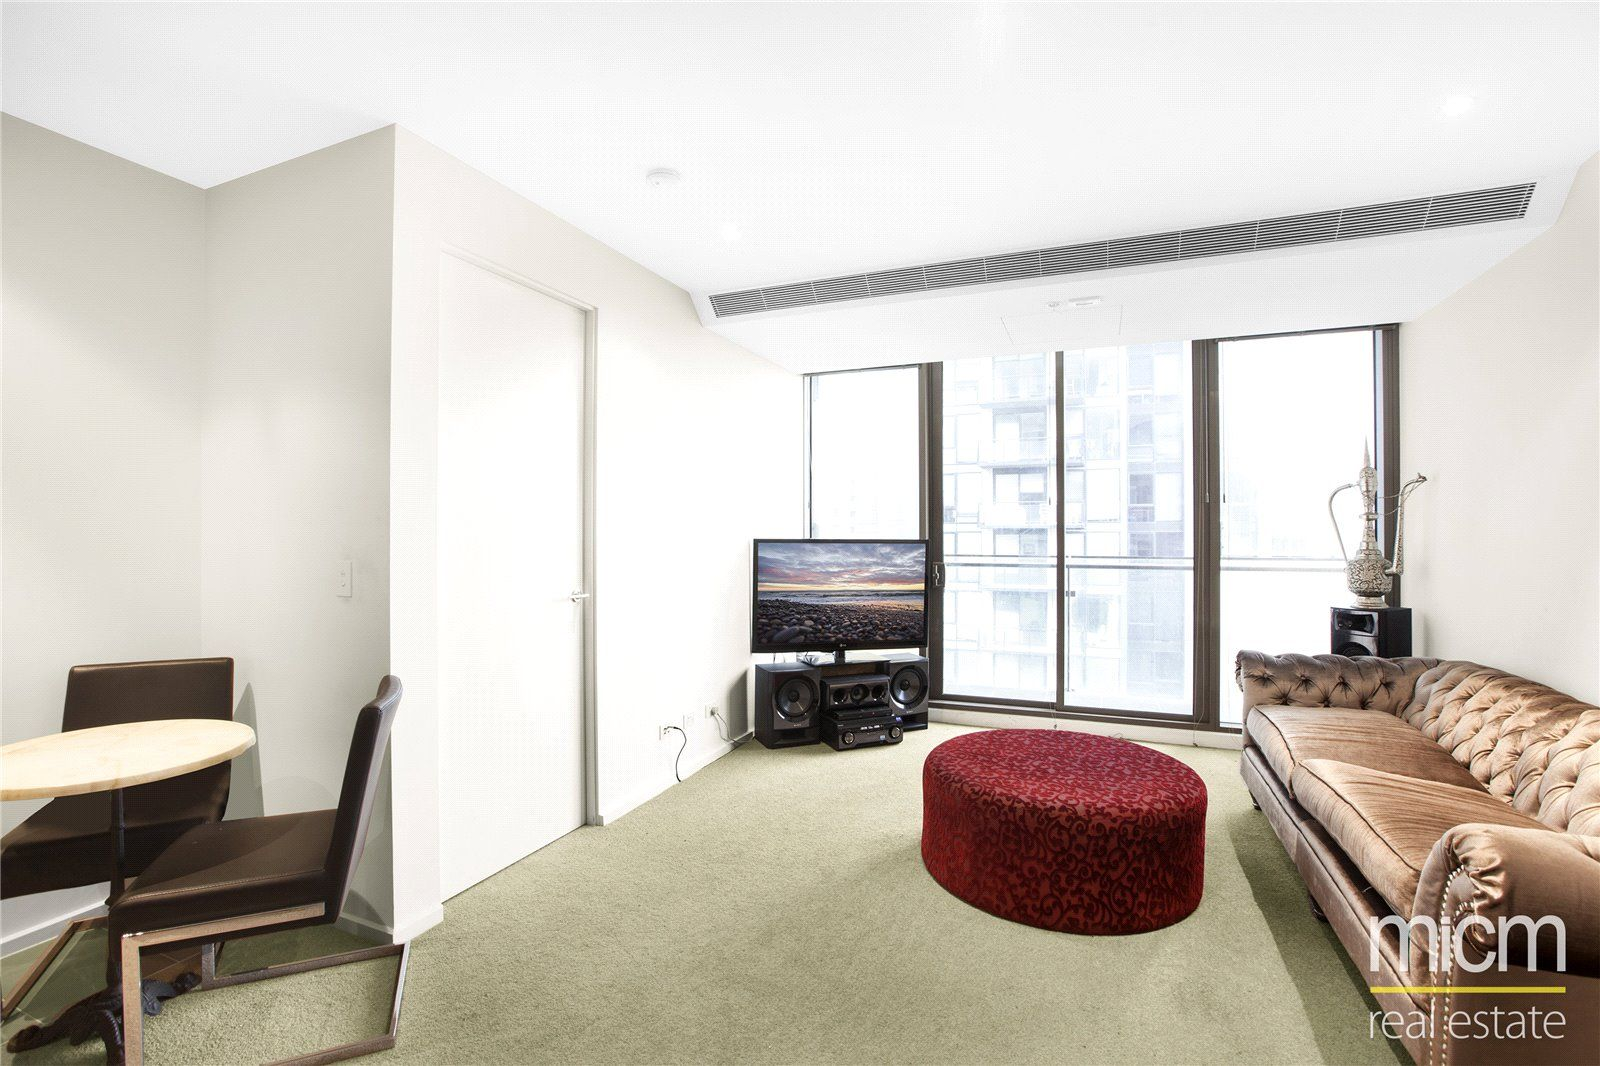 Epic: 27th Floor - Stunning One Bedroom Apartment in Southbank!